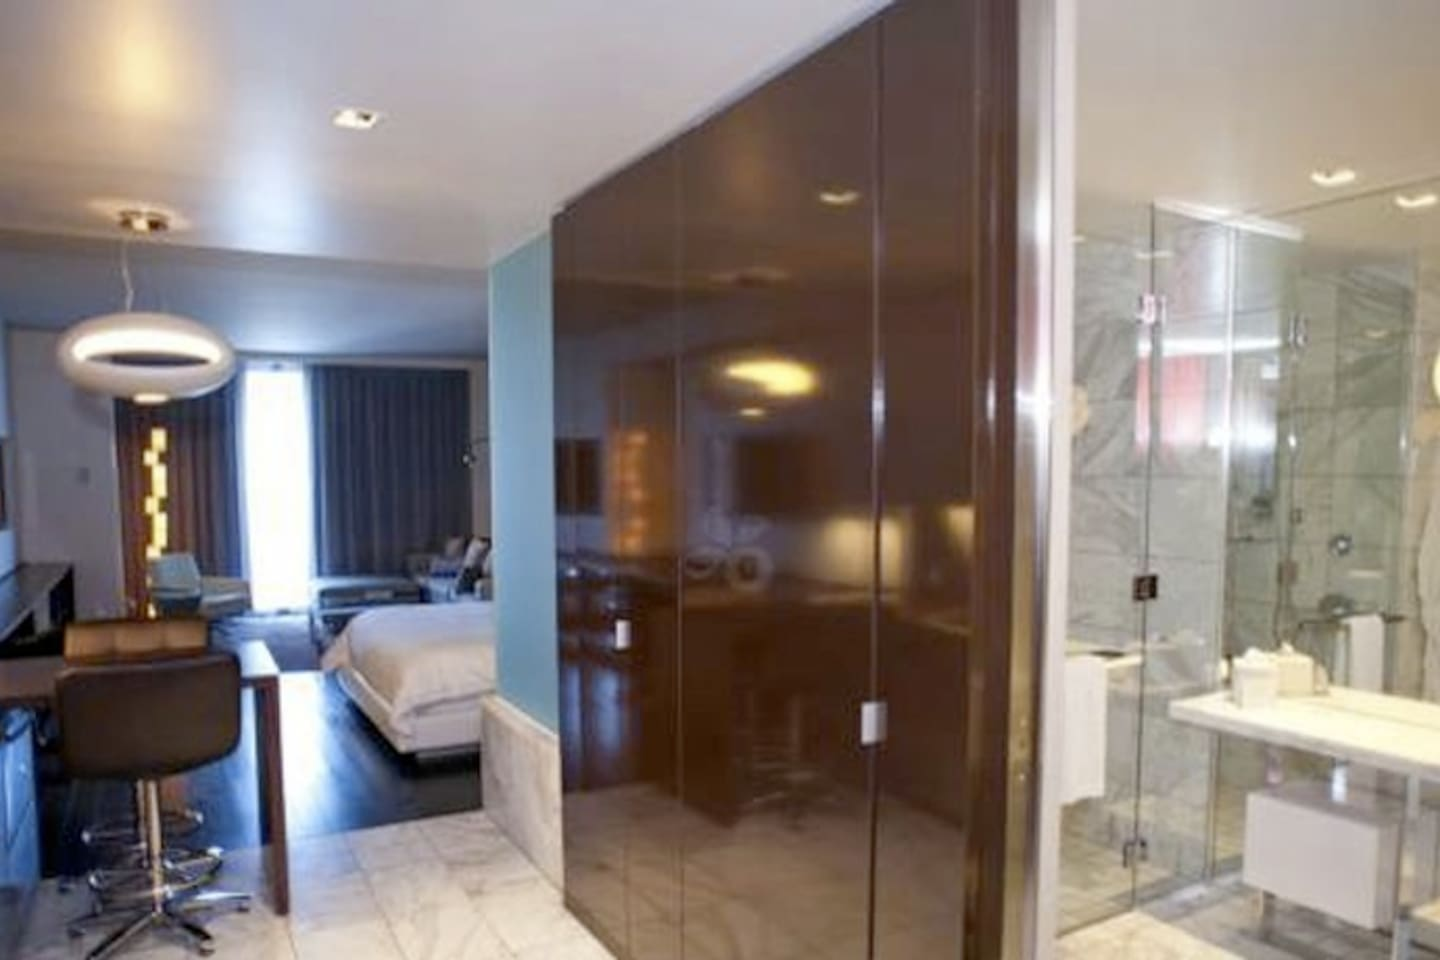 One Bedroom Suite At Palms Place Palms Place Strip View Balcony High Rise Boutique Hotels For